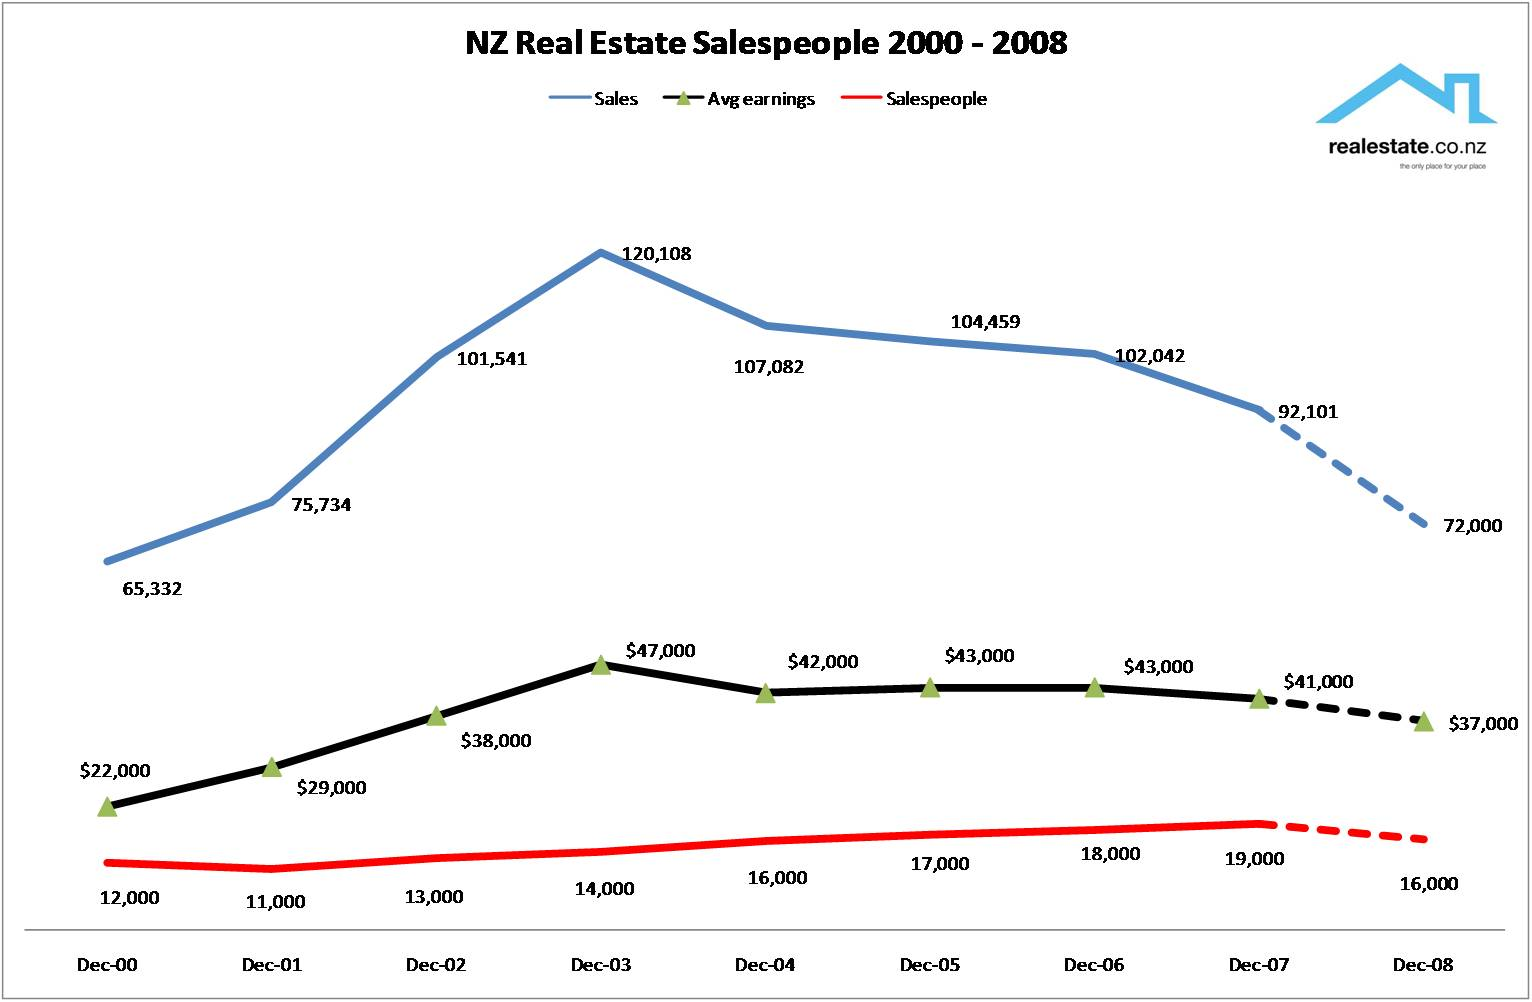 Real estate salespeople stats in NZ